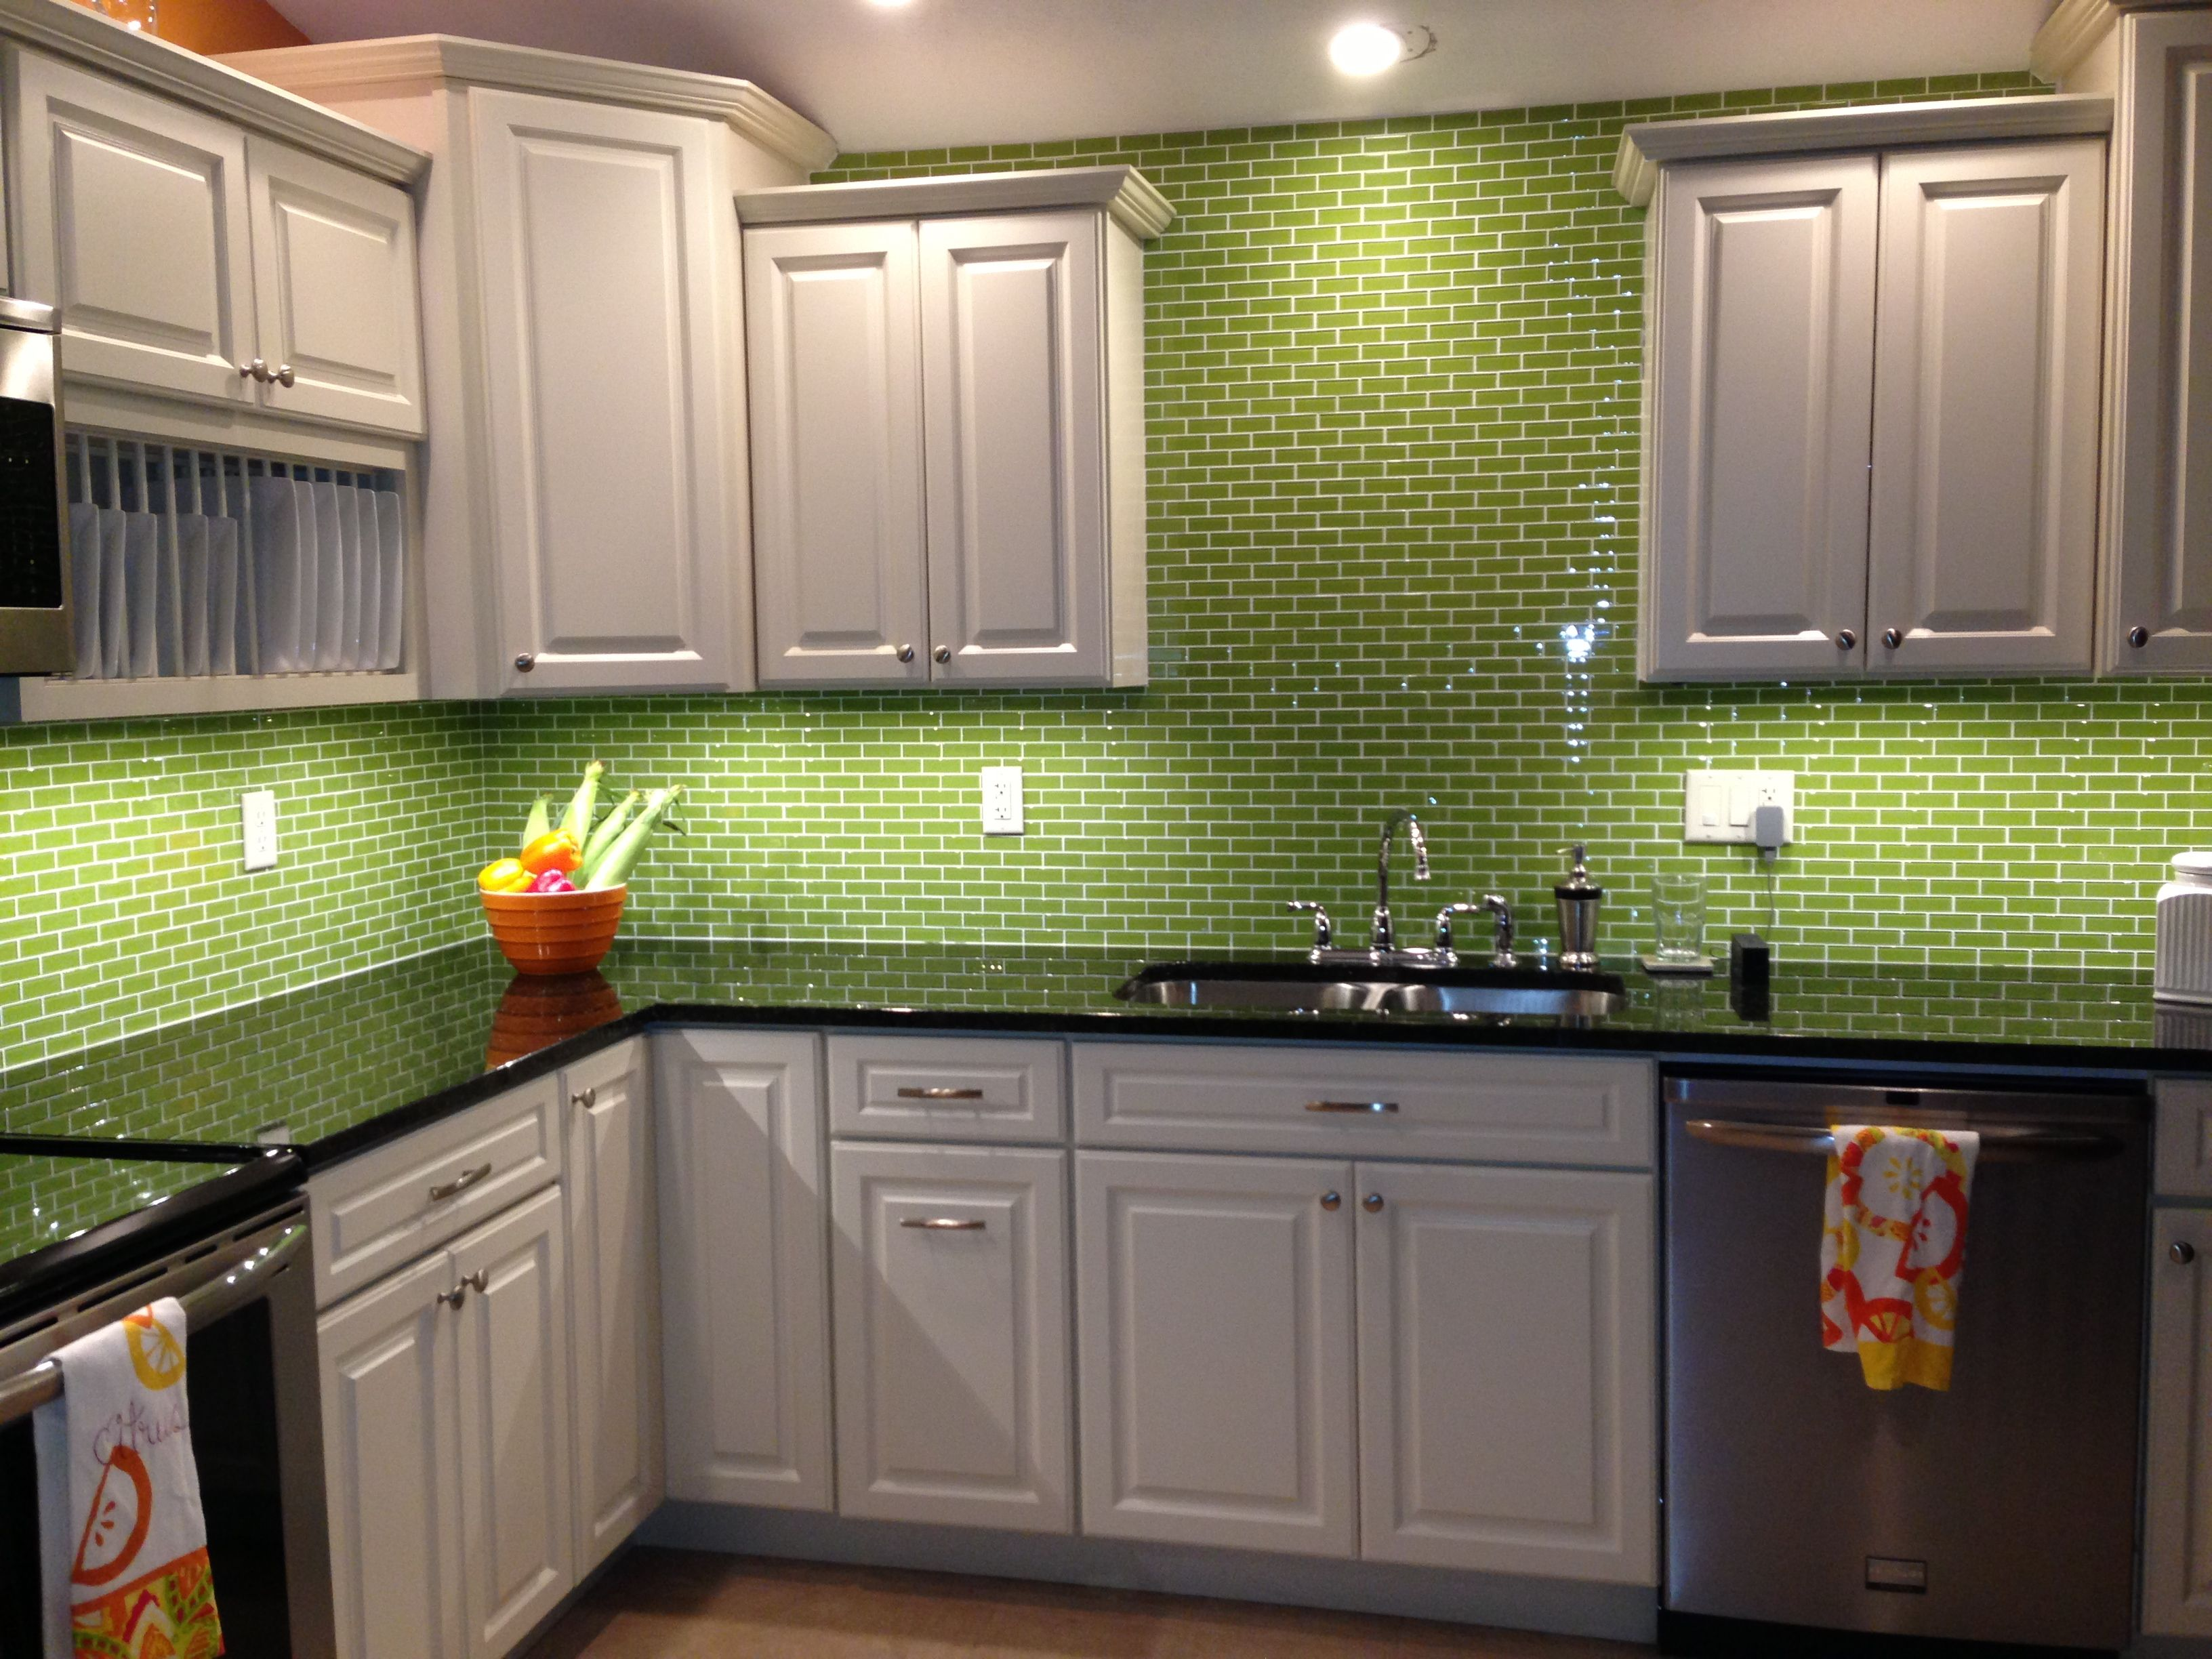 Marvelous Green Glass Tile Backsplash Ideas Part - 2: Lime Green Glass Subway Tile Backsplash Kitchen